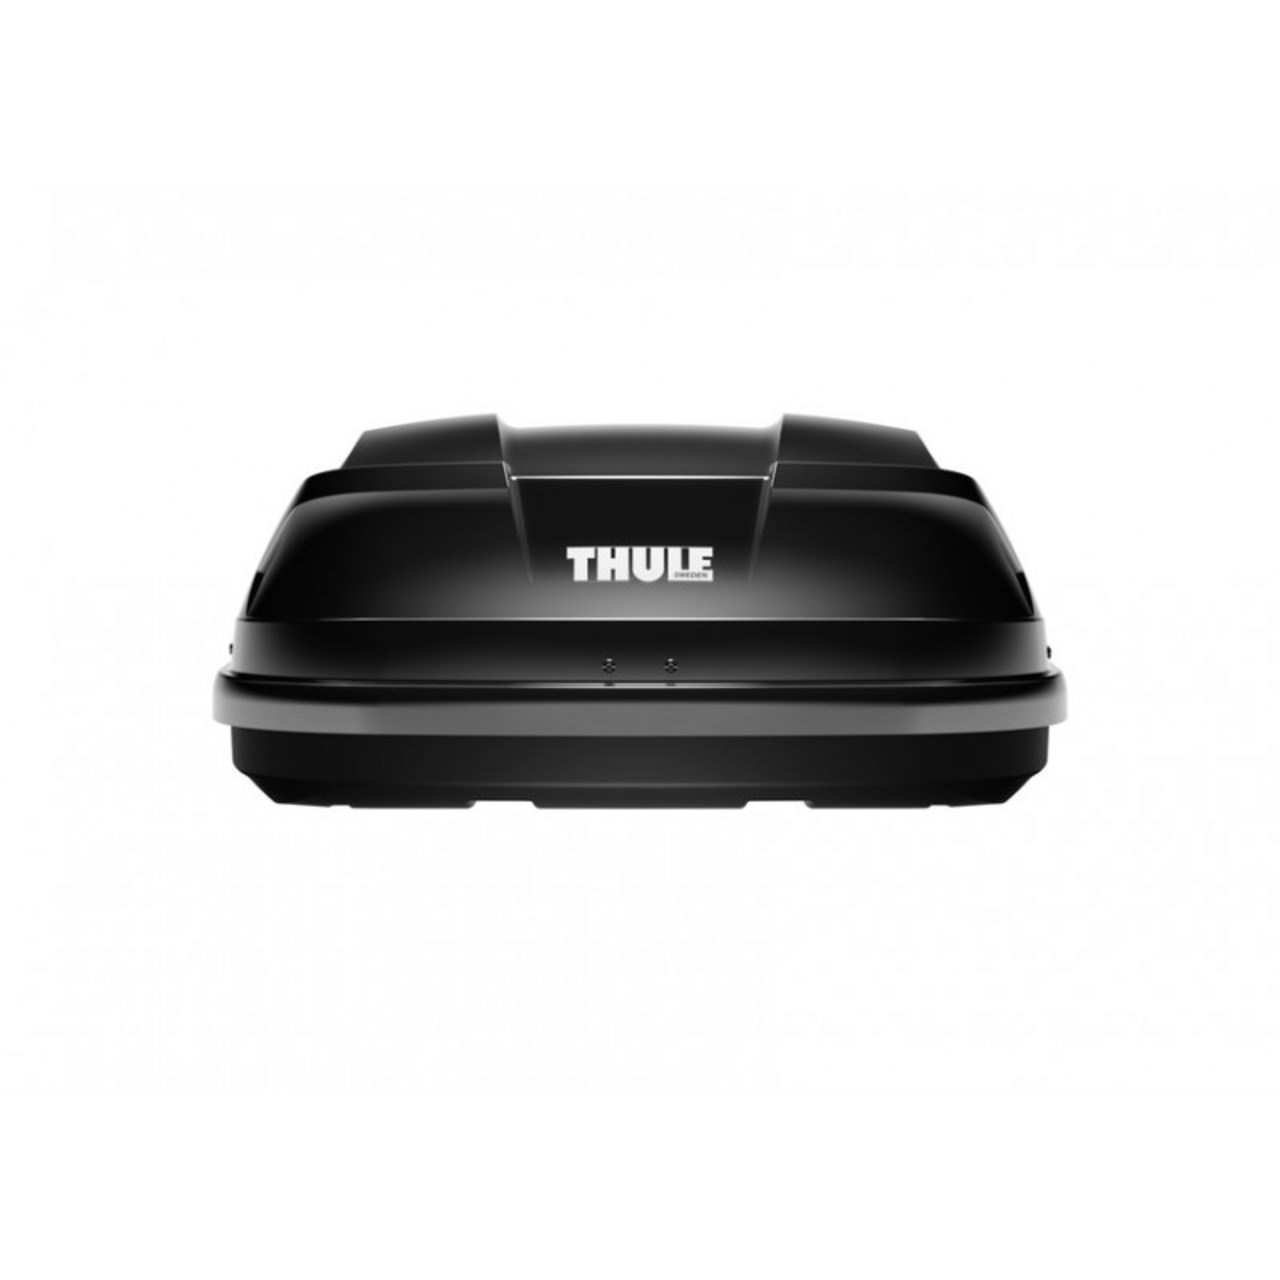 Thule Touring S 100 Roof Box